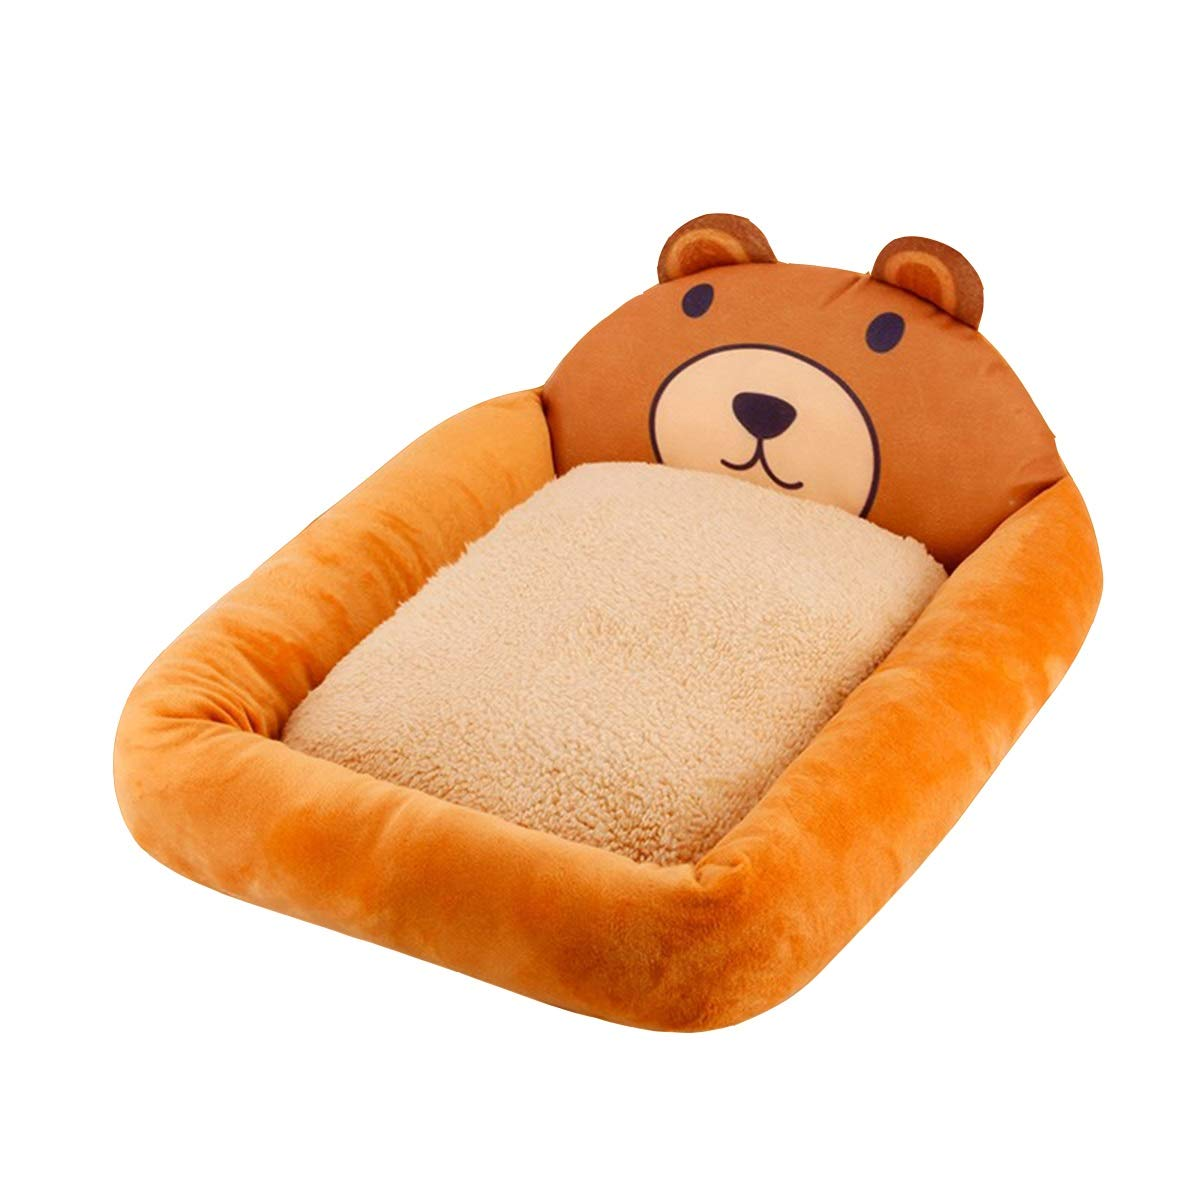 Brown S Brown S Kennel Four Seasons Universal, Cat Litter, Summer Washable, Small Dog Supplies Bed, Summer Bite-Resistant Nest, 3D Bear, 3D Pig, Square (color   Brown, Size   S)